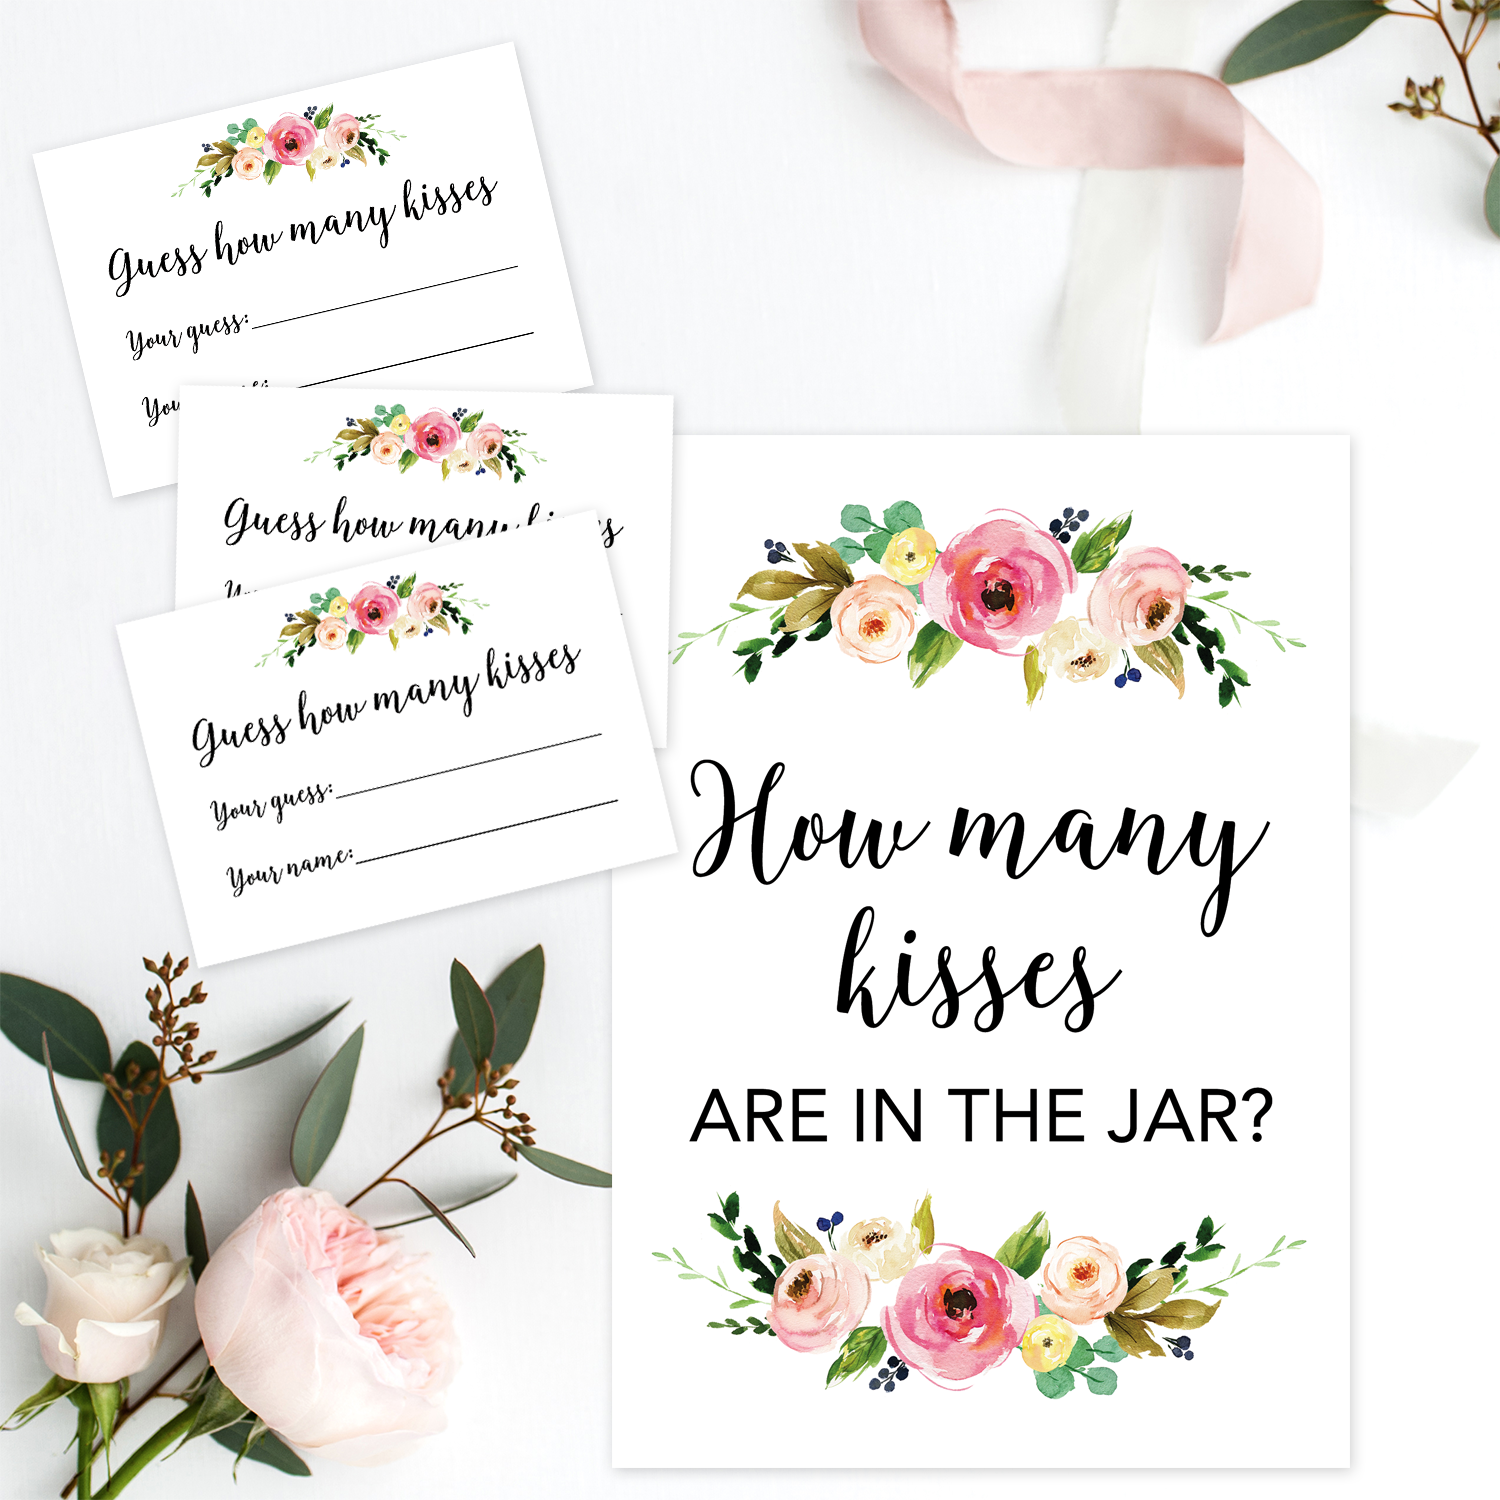 graphic about Guess How Many in the Jar Printable referred to as Floral Printable How A great number of Kisses